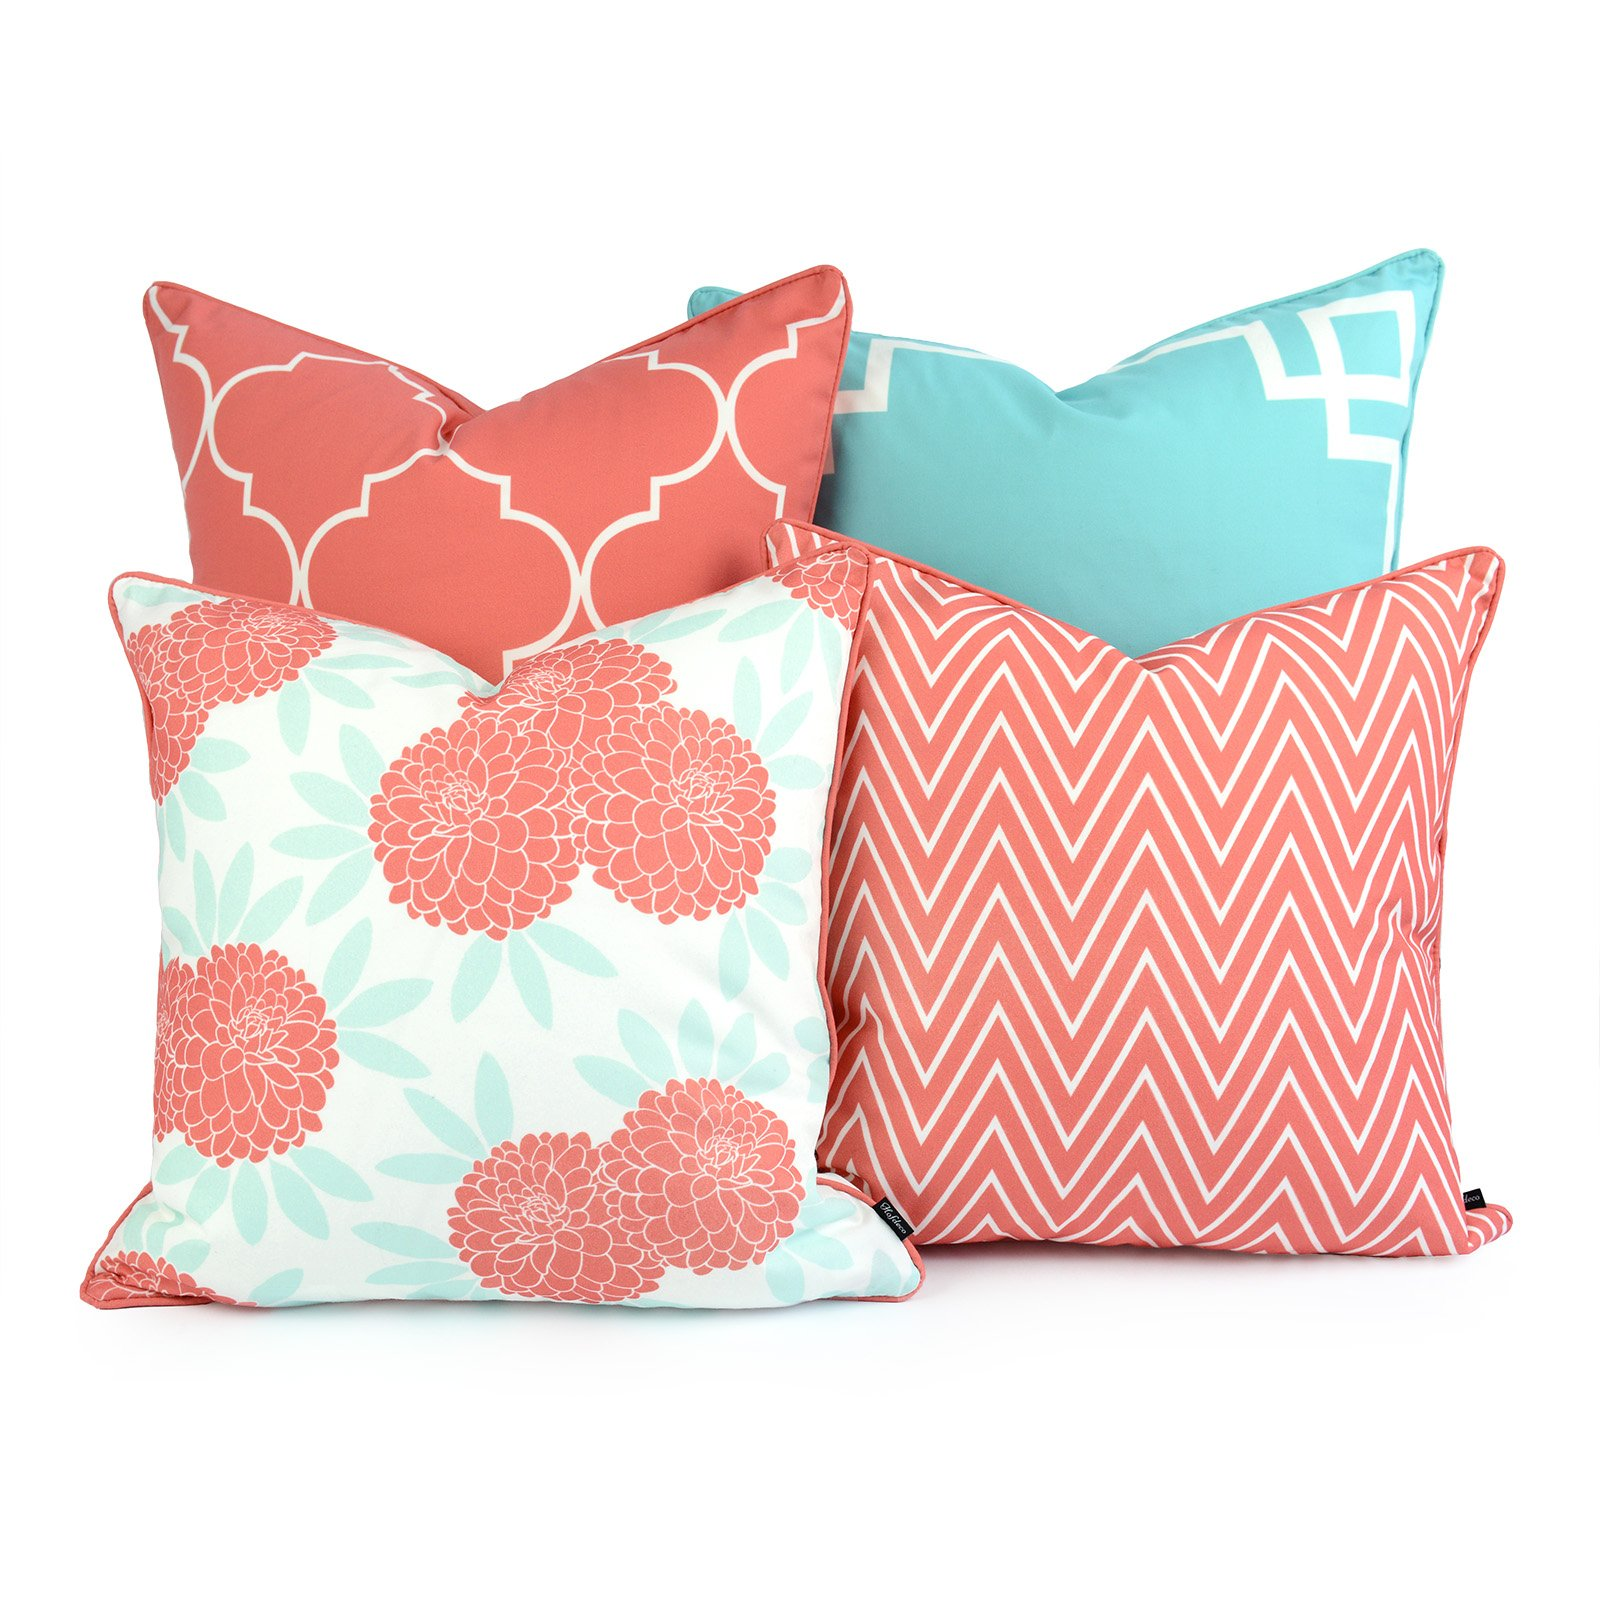 Hofdeco Decorative Throw Pillow Cover INDOOR OUTDOOR WATER RESISTANT Canvas Spring Aqua Coral Pink Greek Key Quatrefoil Chevron Maze Chinoiserie Floral 18''x18'' 20''x20'' Set of 4